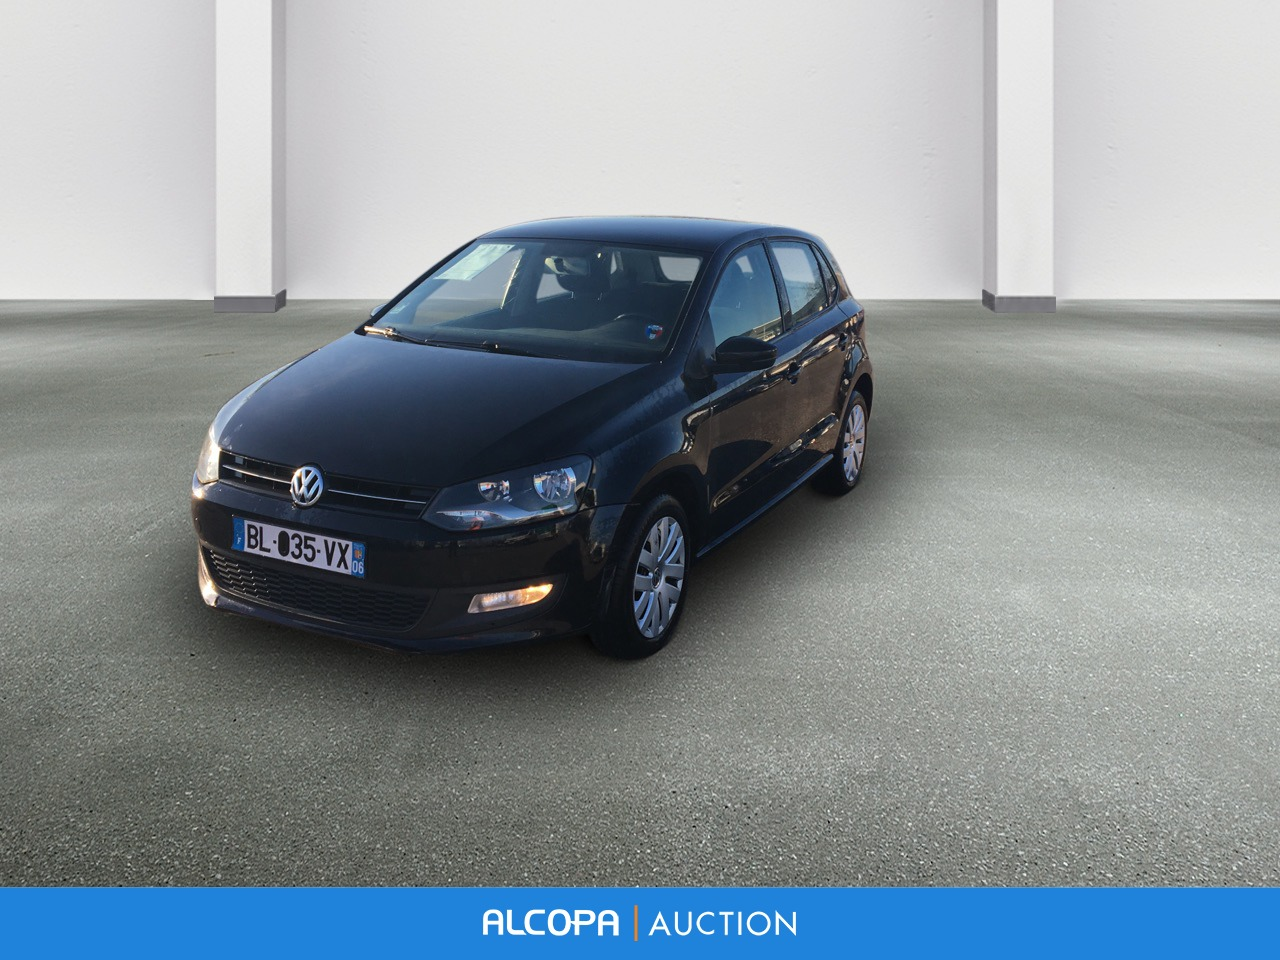 volkswagen polo polo 1 6 tdi 90 cr fap confortline lyon alcopa auction. Black Bedroom Furniture Sets. Home Design Ideas